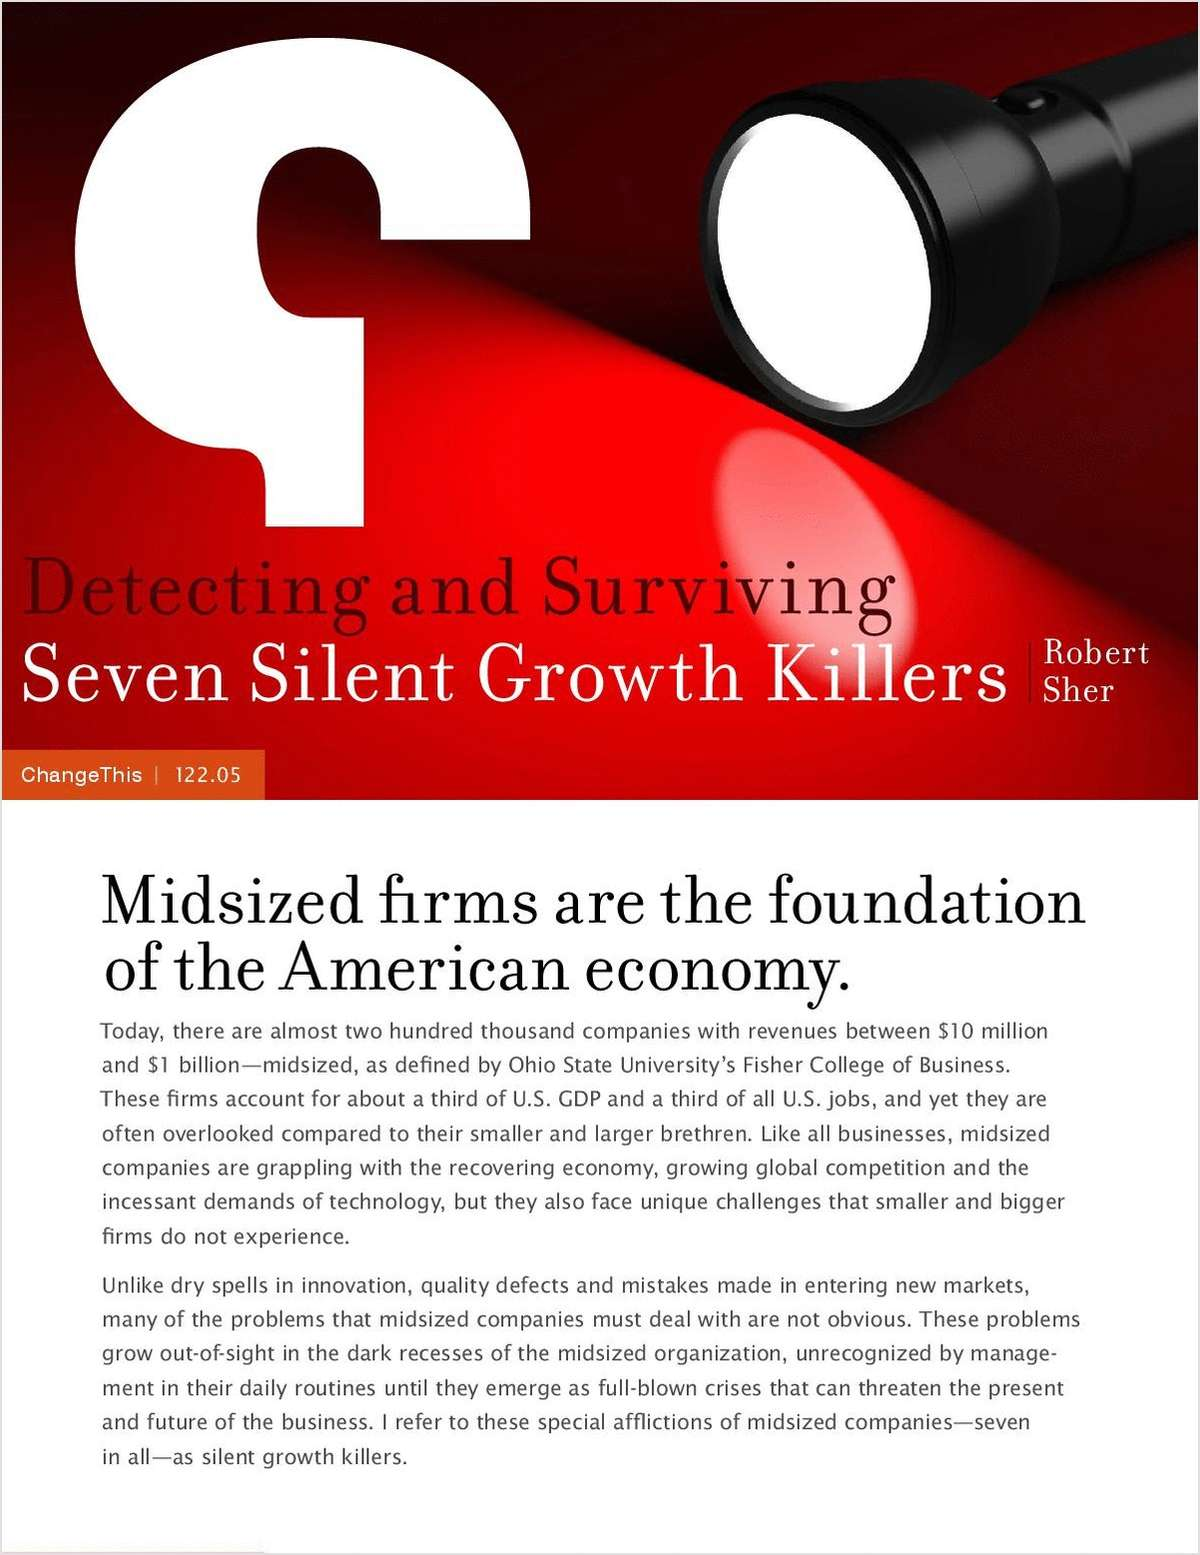 Detecting and Surviving Seven Silent Growth Killers